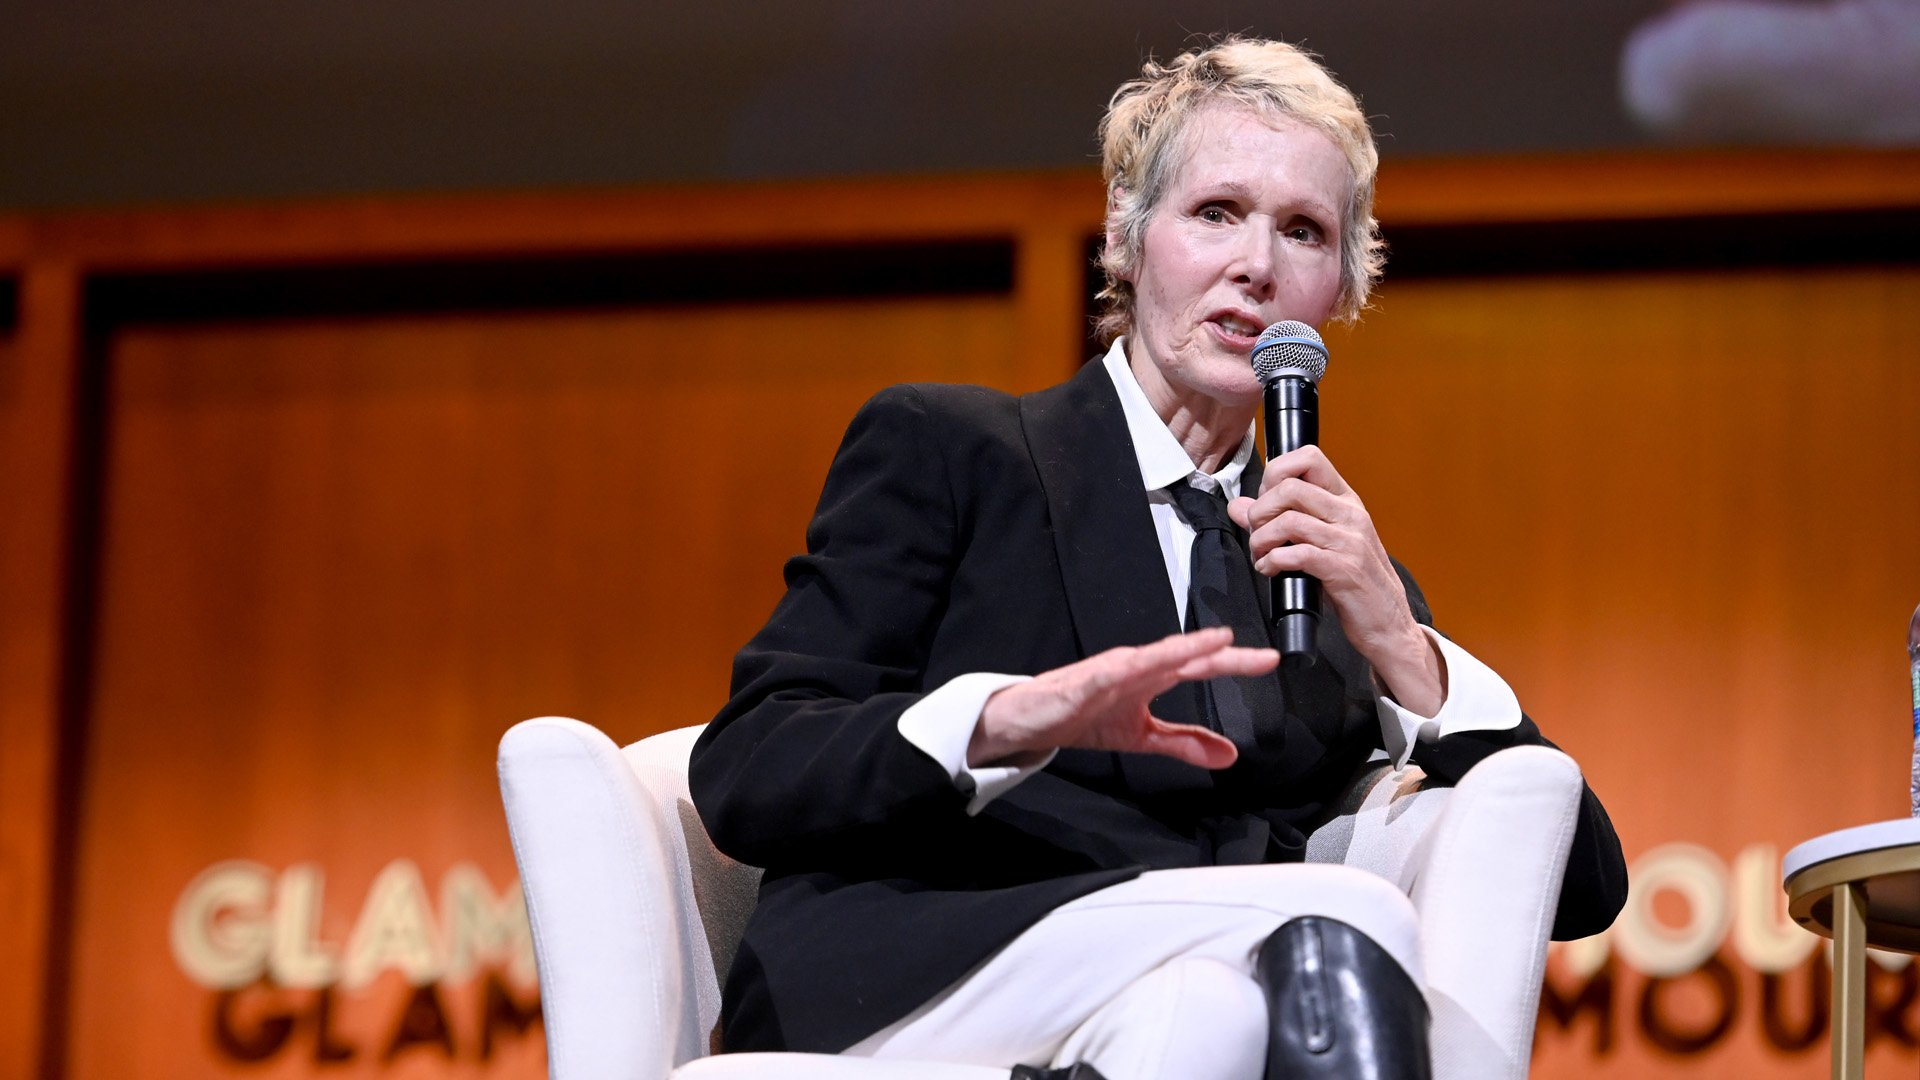 E. Jean Carroll speaks onstage during the How to Write Your Own Life panel at the 2019 Glamour Women Of The Year Summit at Alice Tully Hall on November 10, 2019 in New York City. (Credit: Ilya S. Savenok/Getty Images for Glamour)